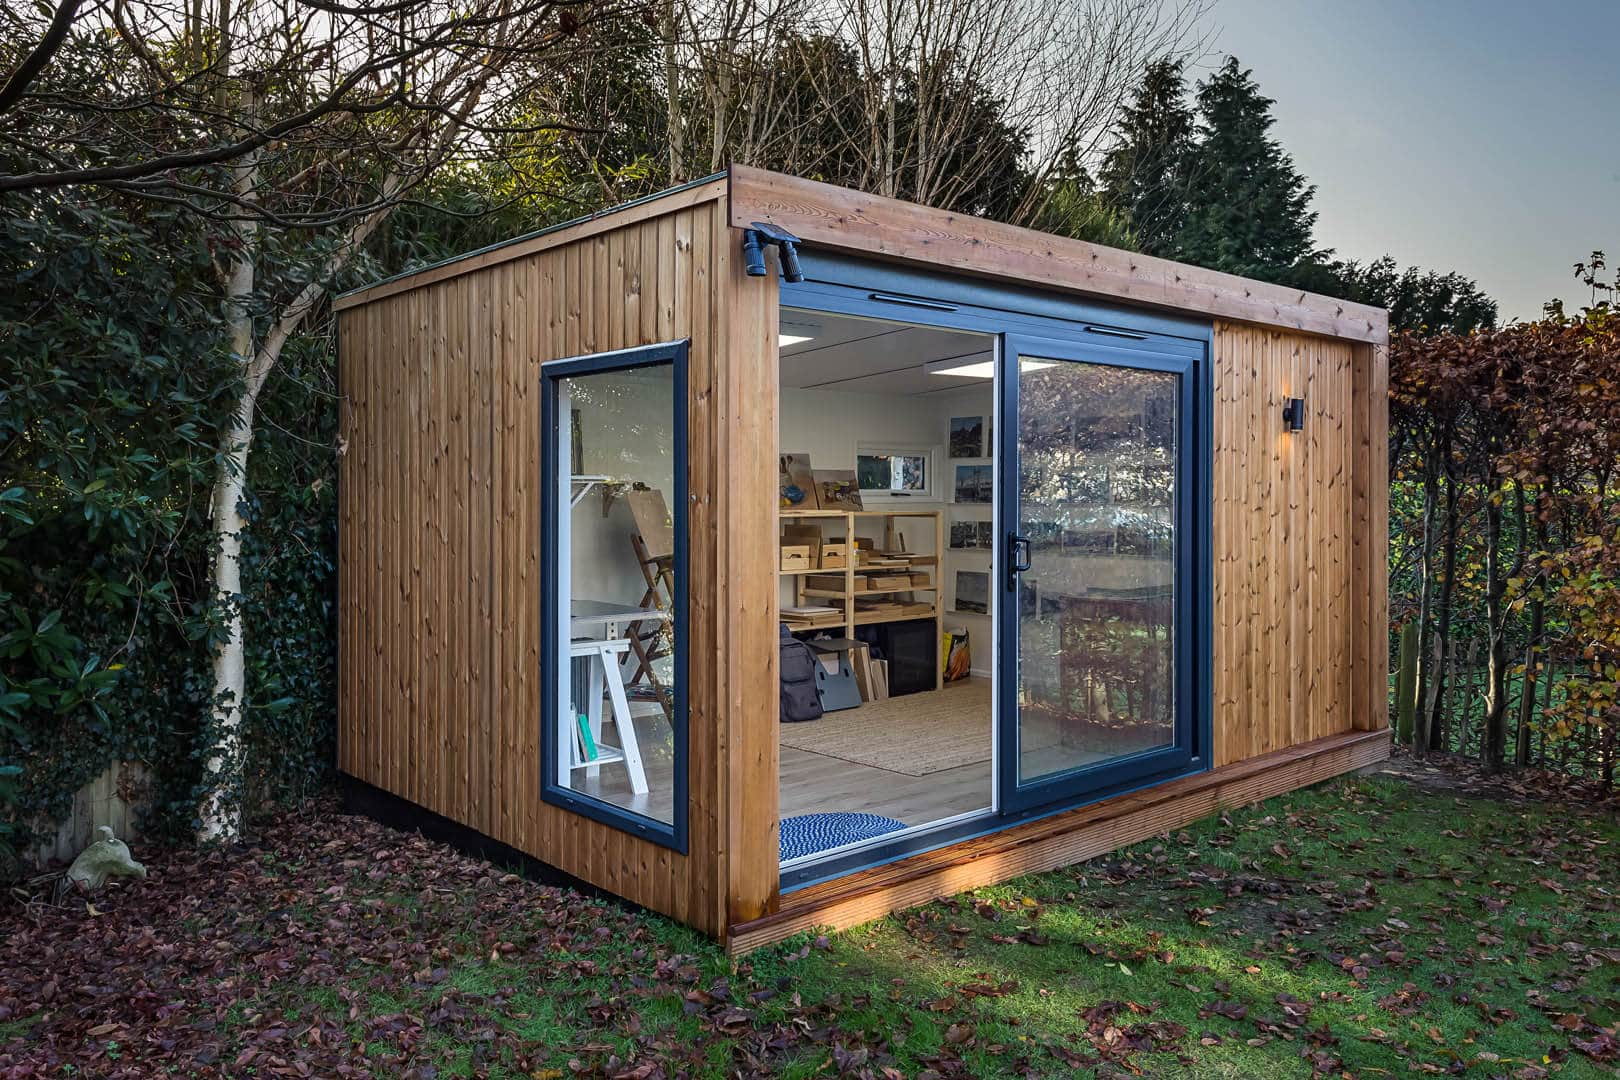 Inspiration redwood clad garden room with graphite sliding doors leading into space being used as an art studio